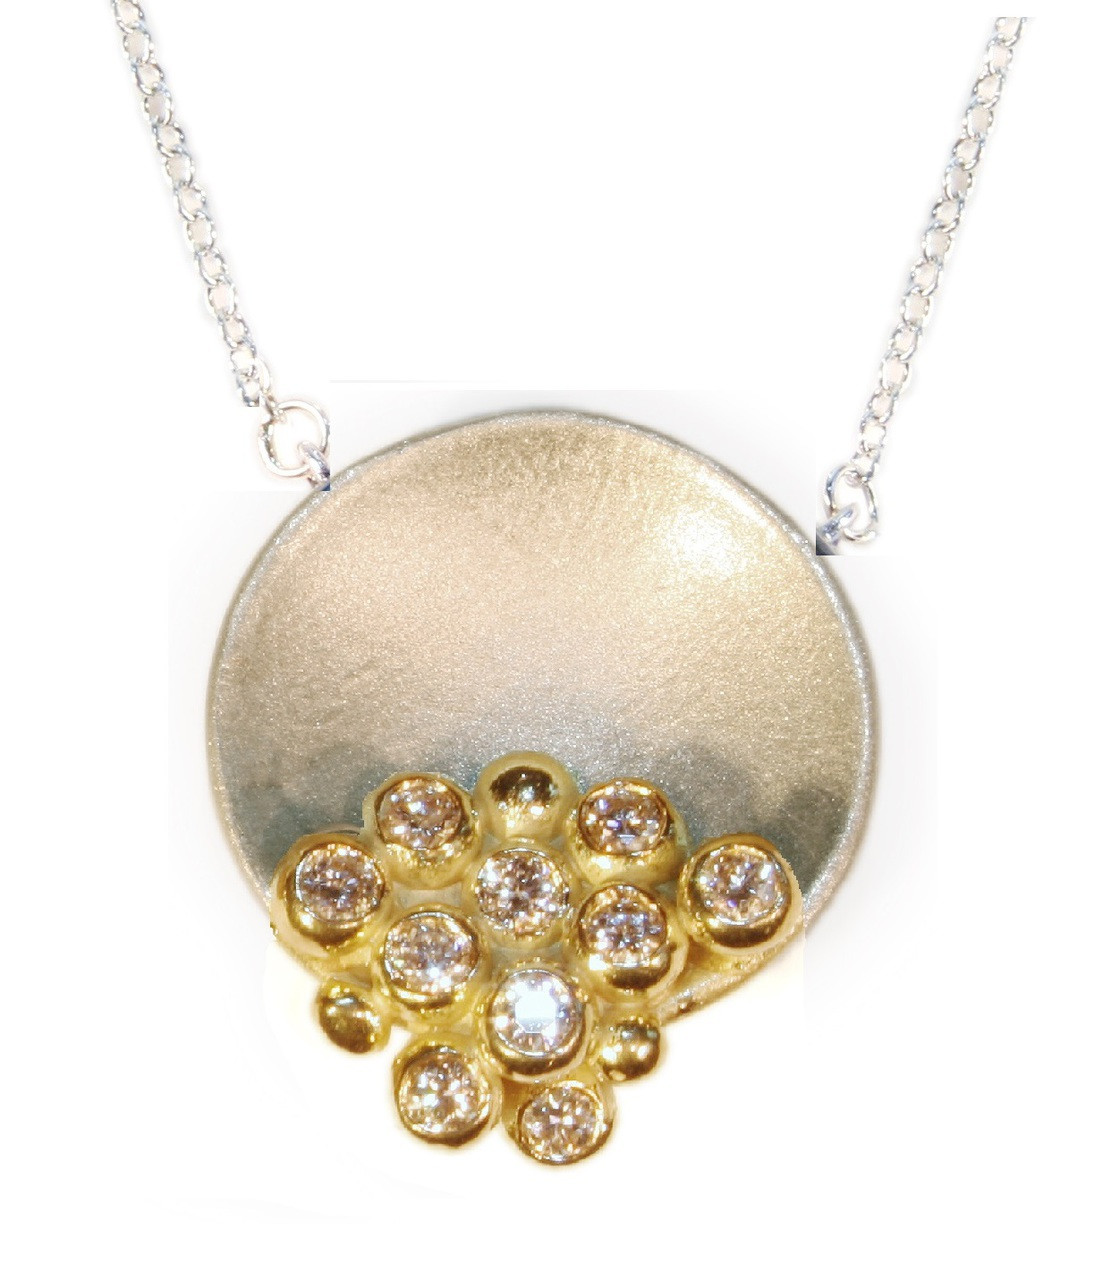 The Bowl of Overflowing Diamonds- aka Palm Beach, shown here in silver and gold.  This can be solid gold or gold plate.